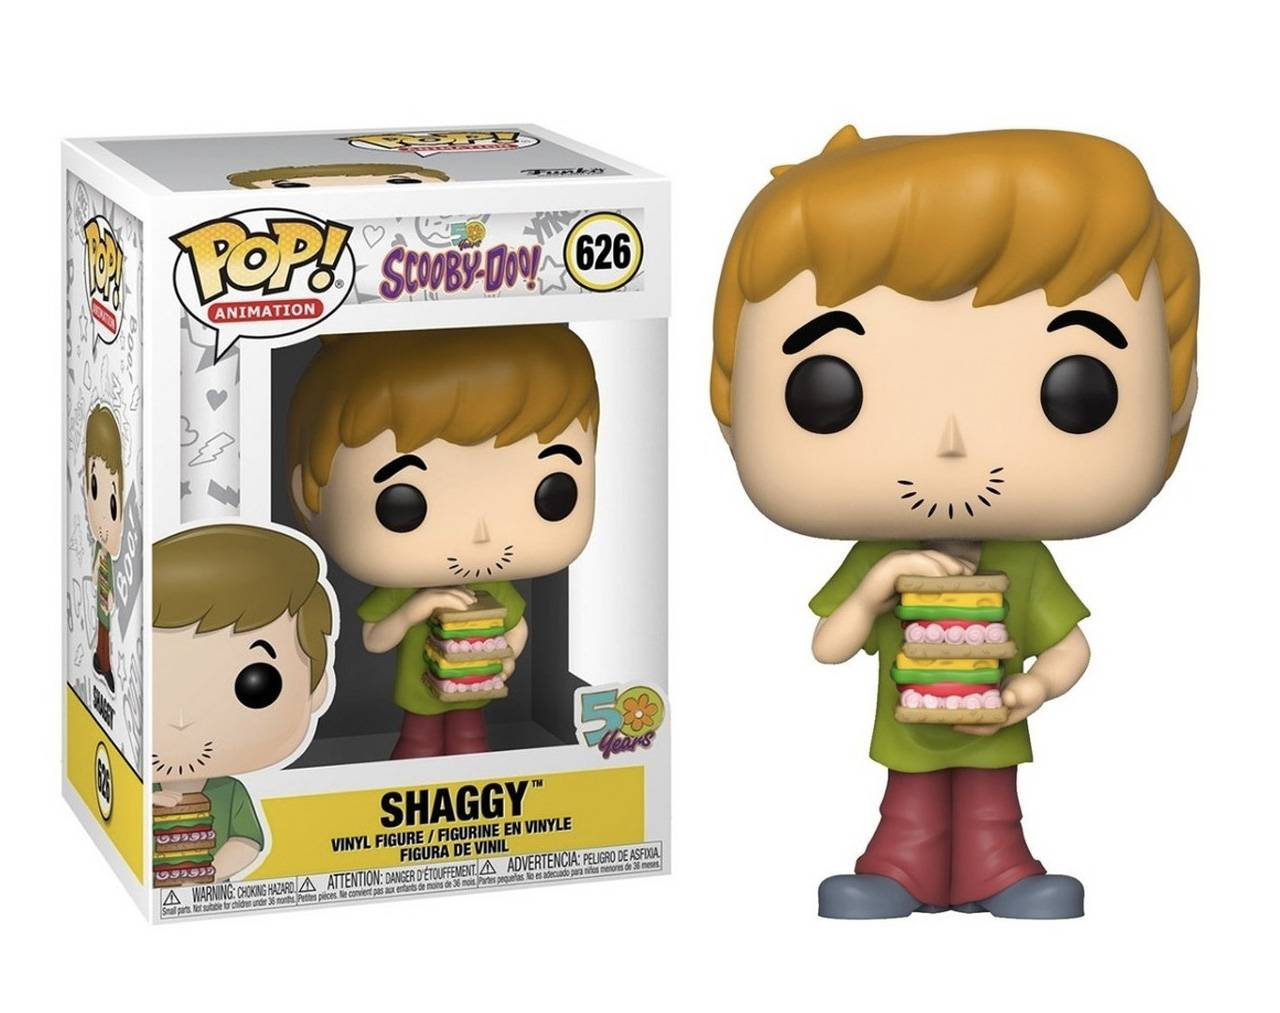 Shaggy (with Sandwich) Pop! Vinyl